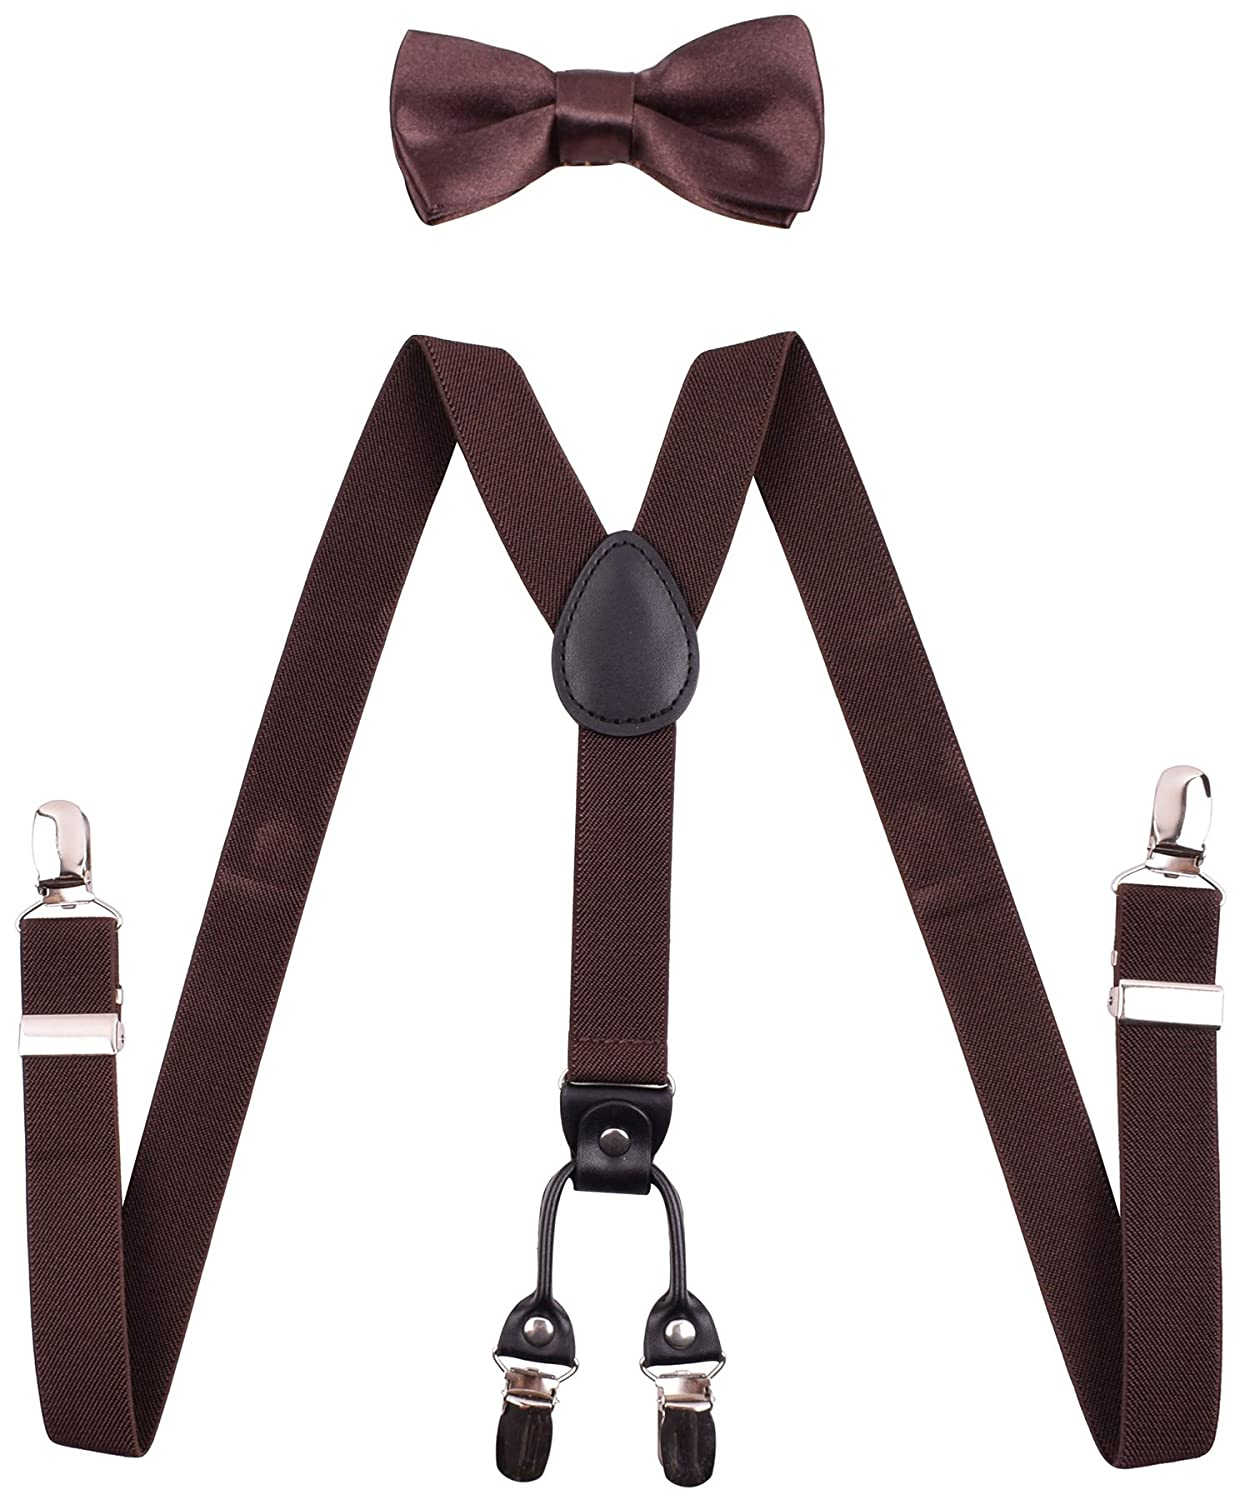 YJDS Boys' Suspenders and Bow Tie Set Adjustable Y Back Ksnb14HYHALLOWZT640523